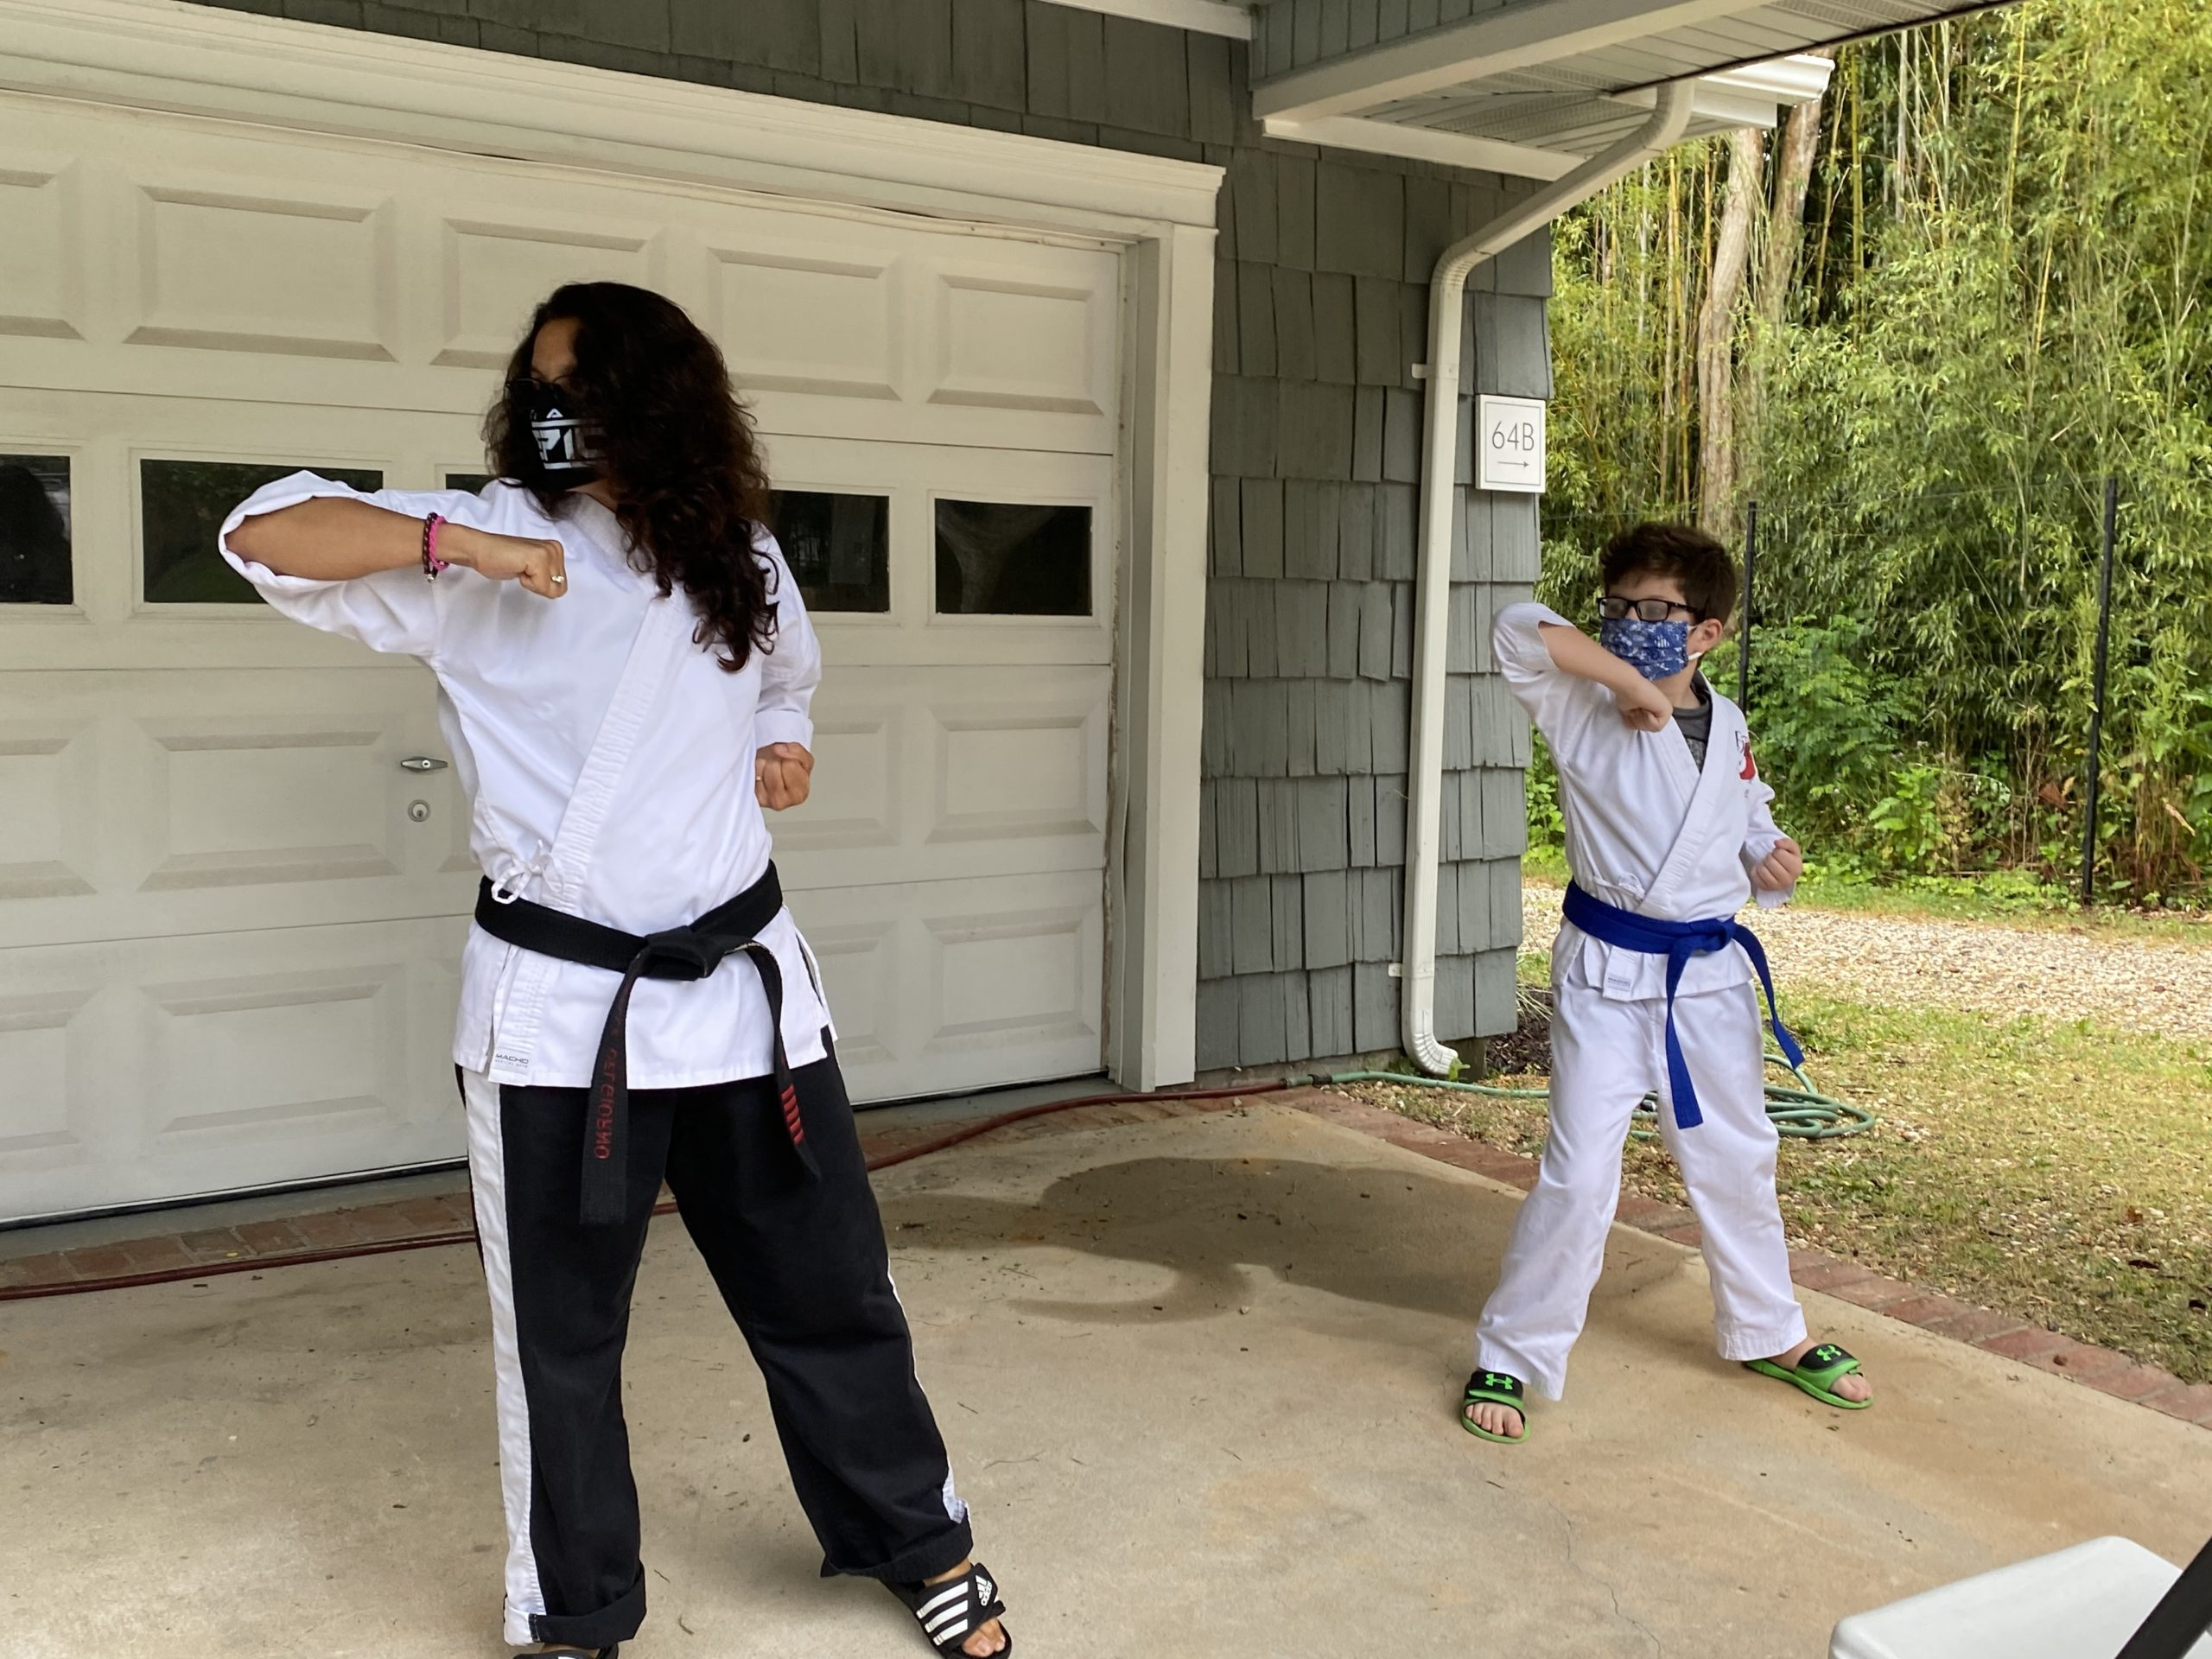 Michelle Del Giorno teaching a private martial arts lesson to student Wilson Lones at his home on Shelter Island